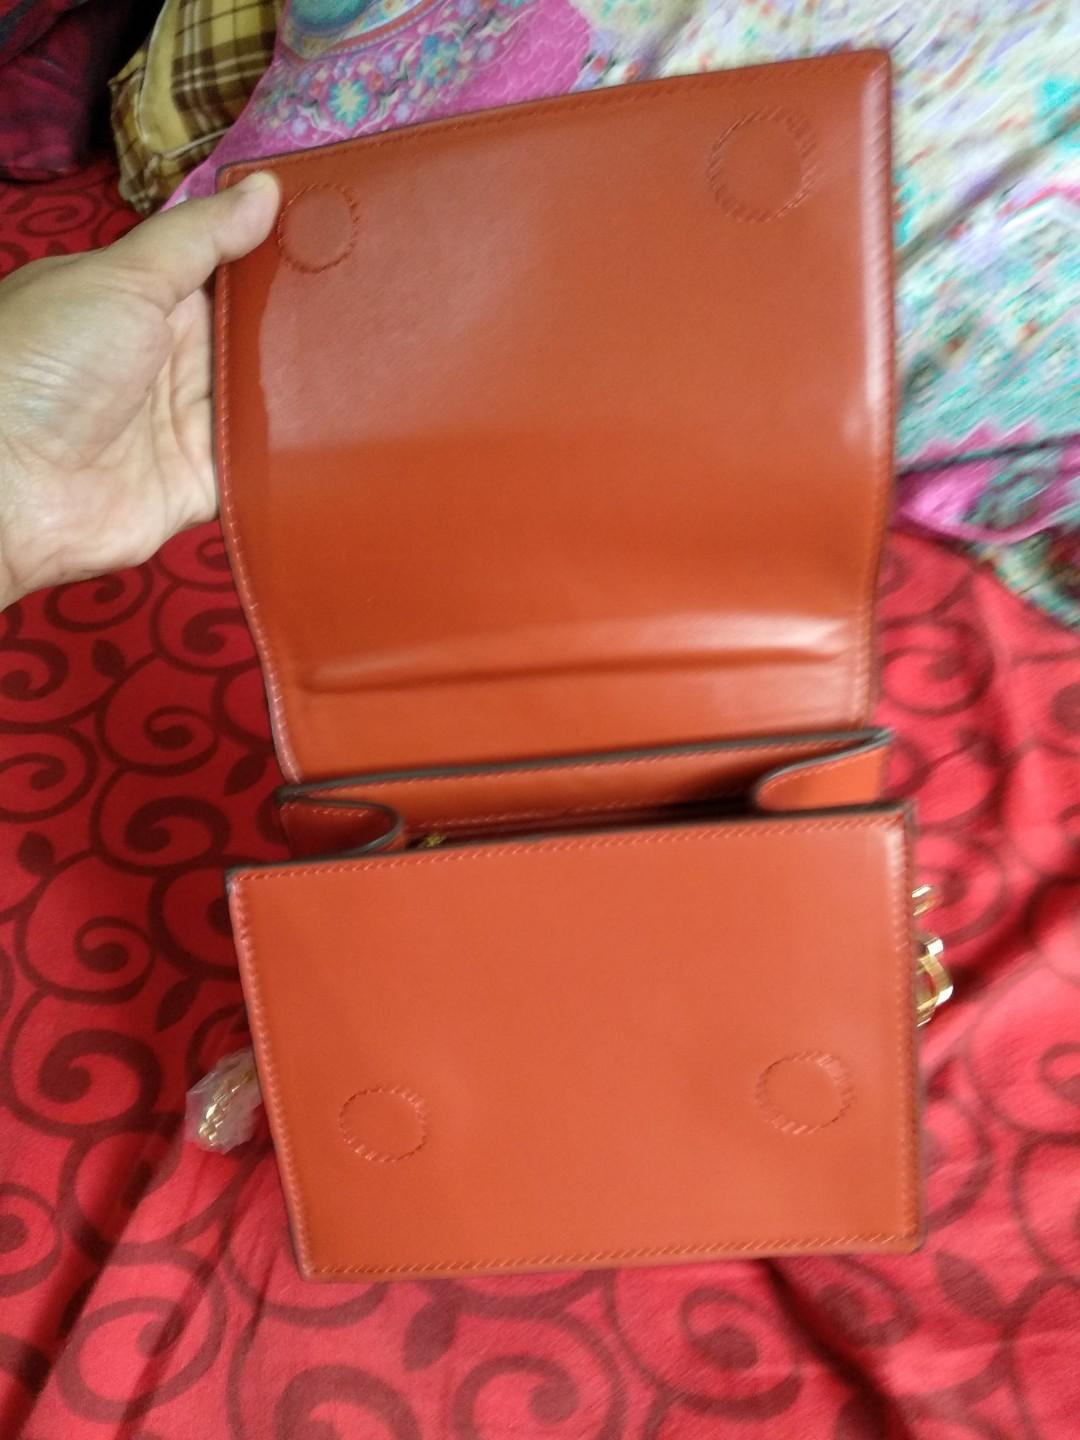 Tas cnk ukuran 17 x 15 orange new